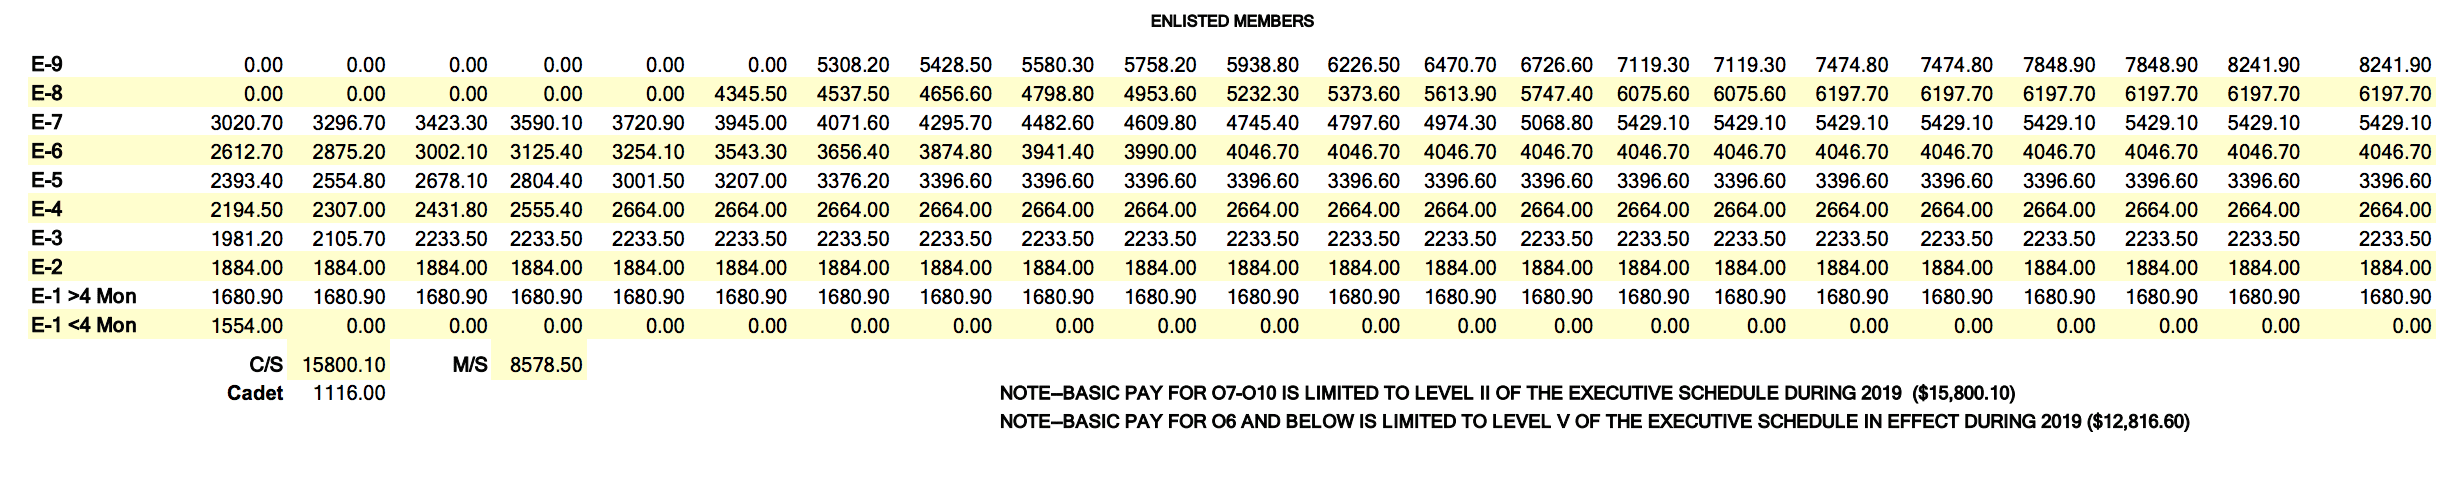 2019 ENLISTED OFFICERS PAY CHART